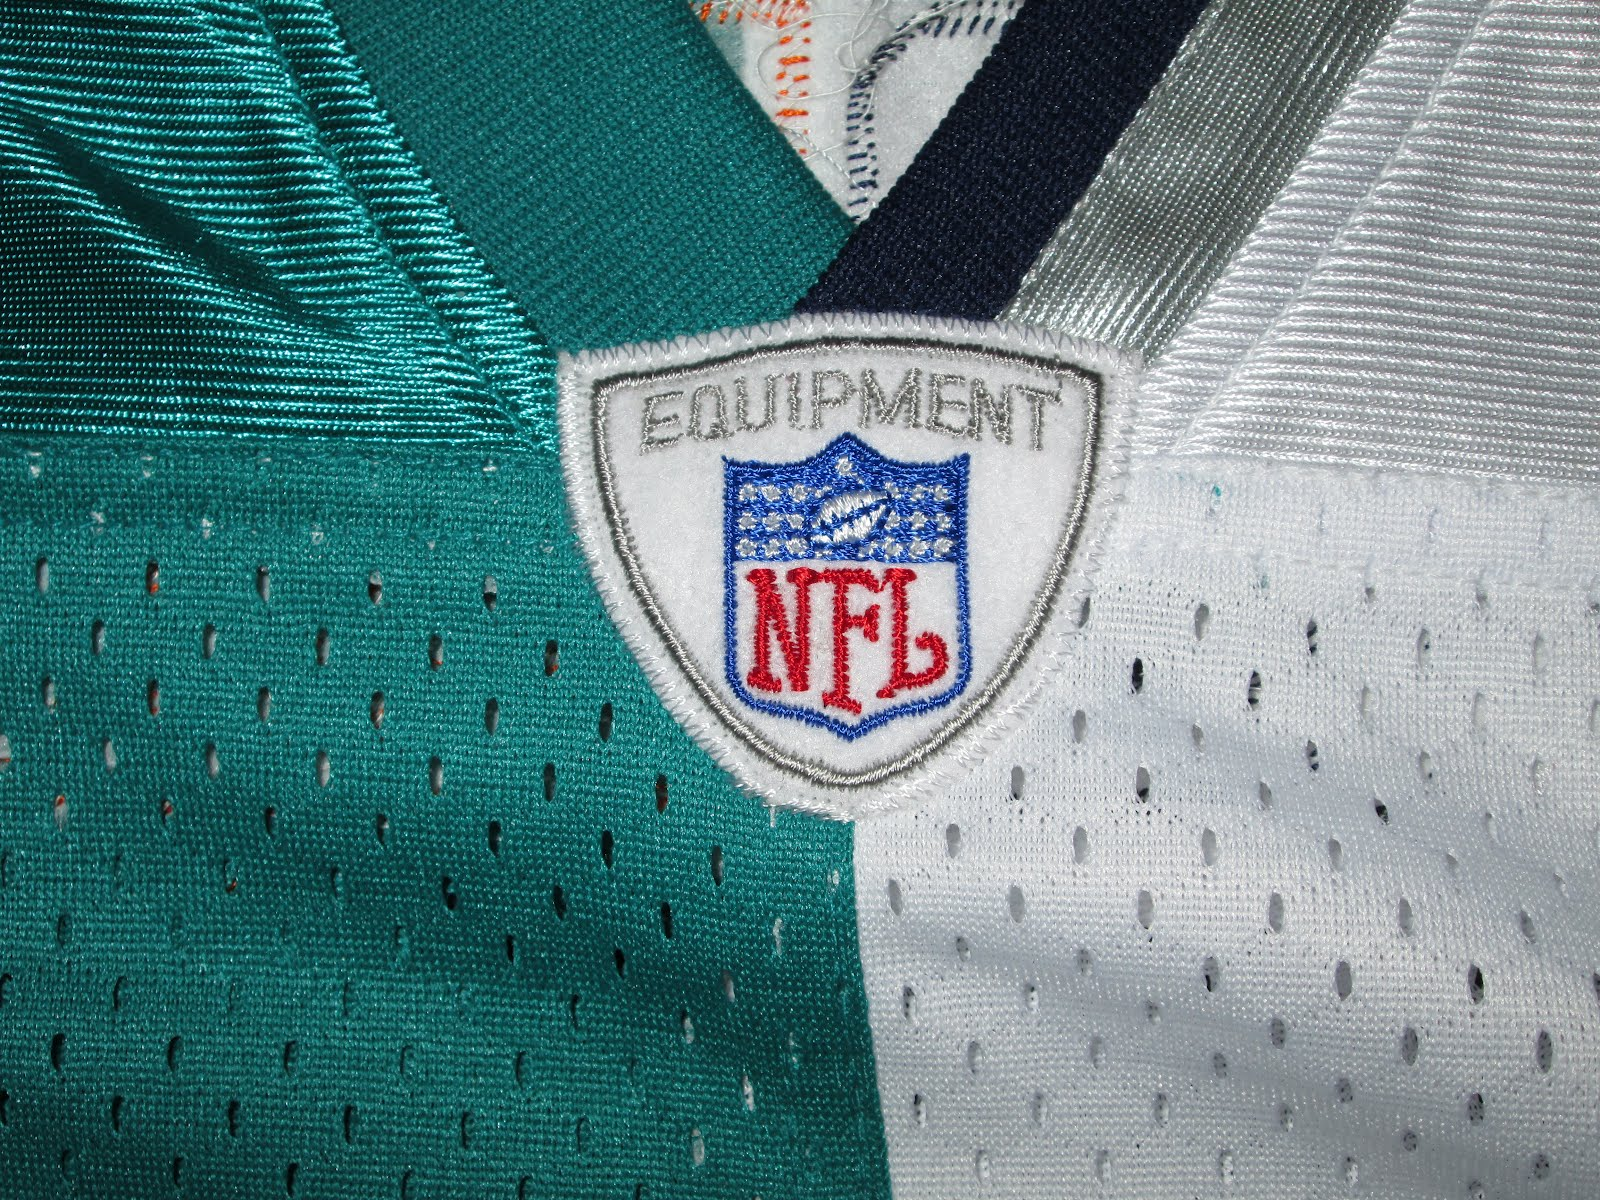 399313c99 Vintage Zach Thomas Miami Dolphins New England Patriots Split Sewn Jersey.  Posted by Vintage10916 at 2 16 PM